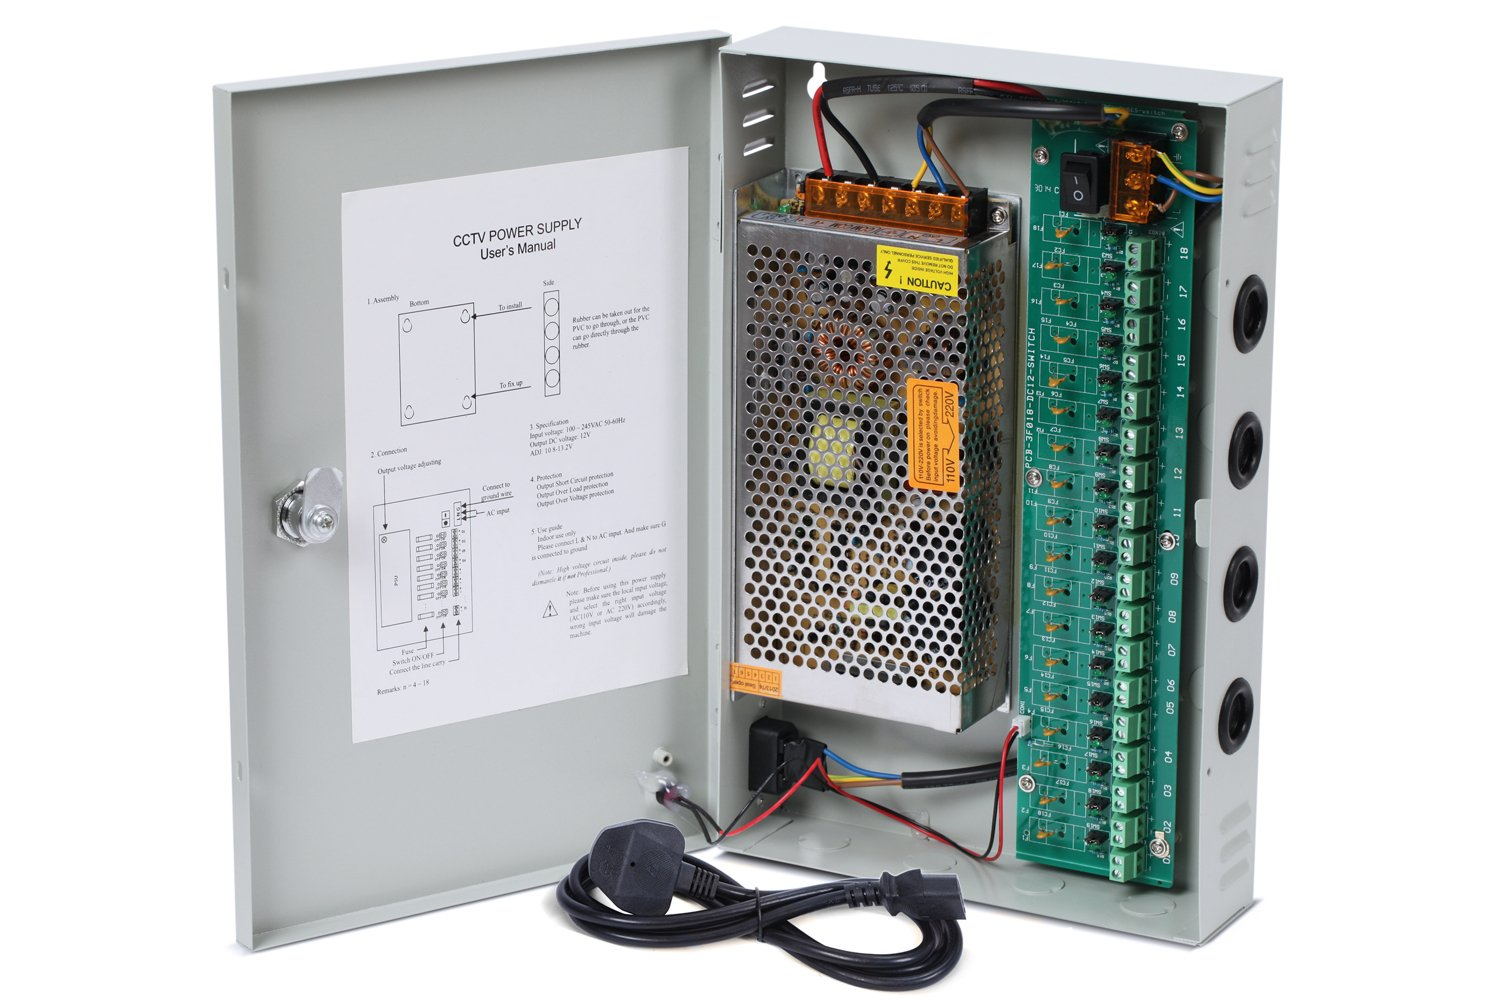 71vgWNAOK3L._SL1500_ nordstrand cctv camera power supply distribution box amazon co uk 18 Channel CCTV Power Supply at bayanpartner.co